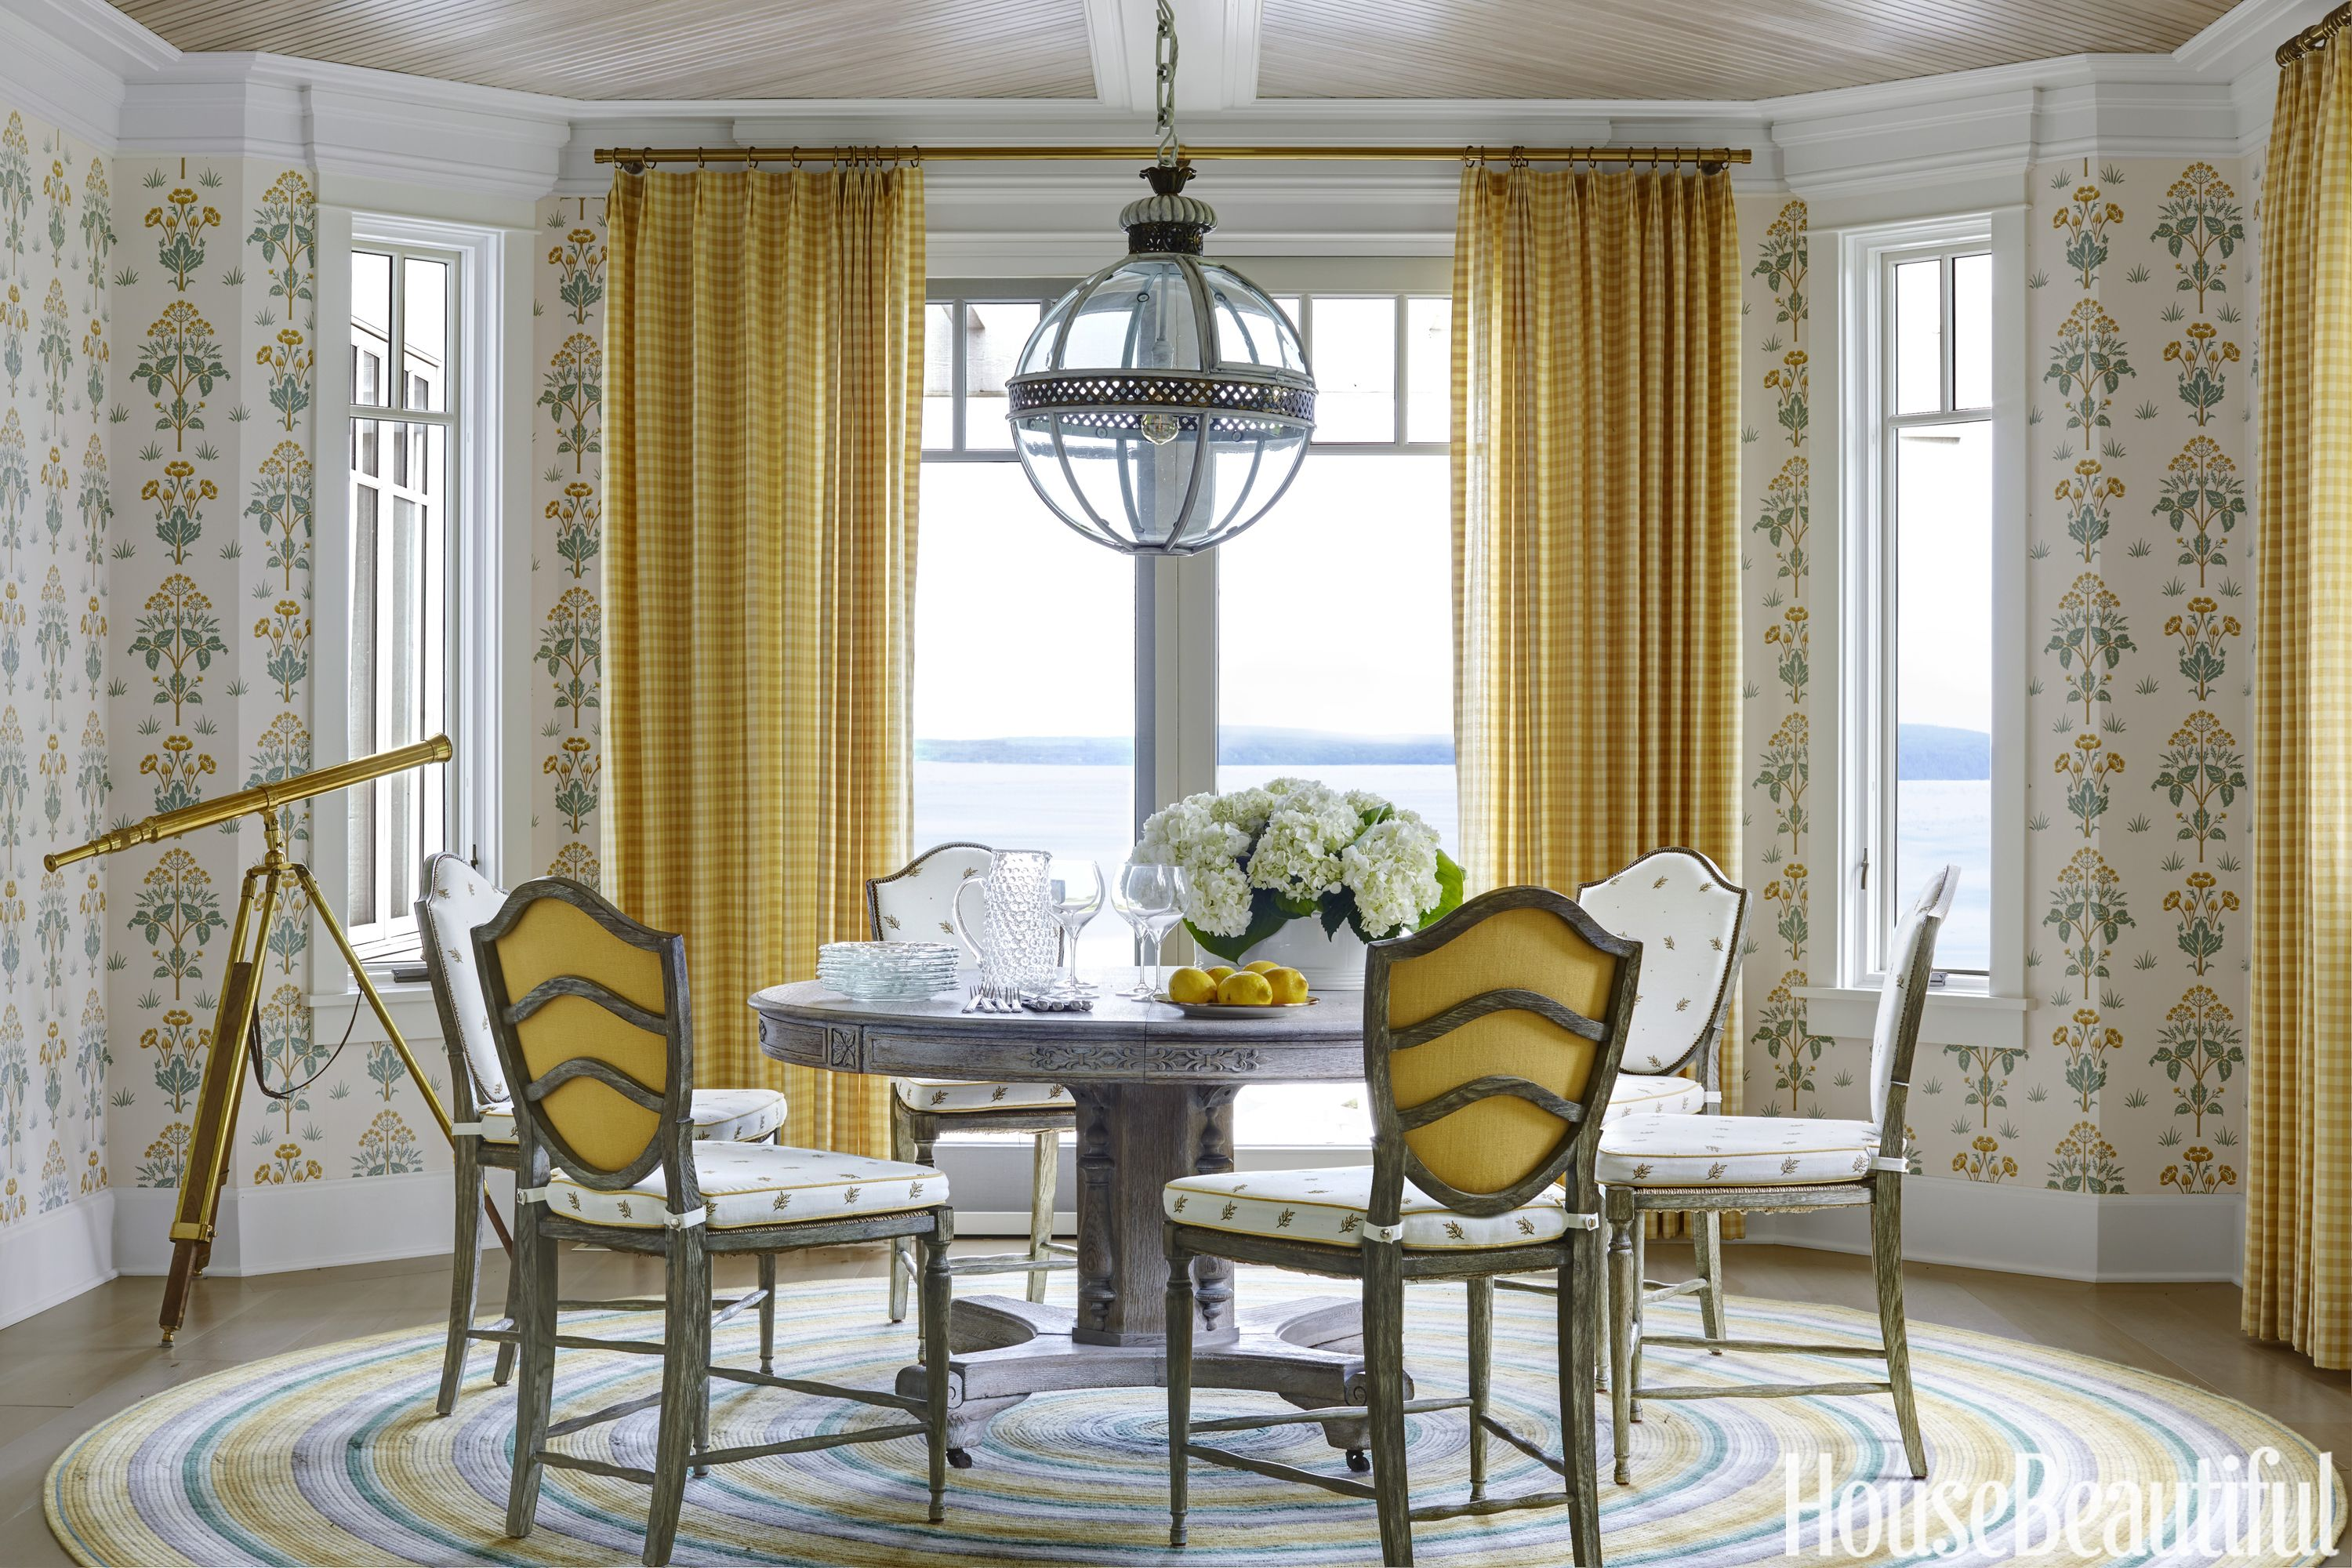 Blues And Yellows Warm Up This Coupleu0027s Michigan Vacation Home   Take A  Look At This Northern European Inspired Vacation Home